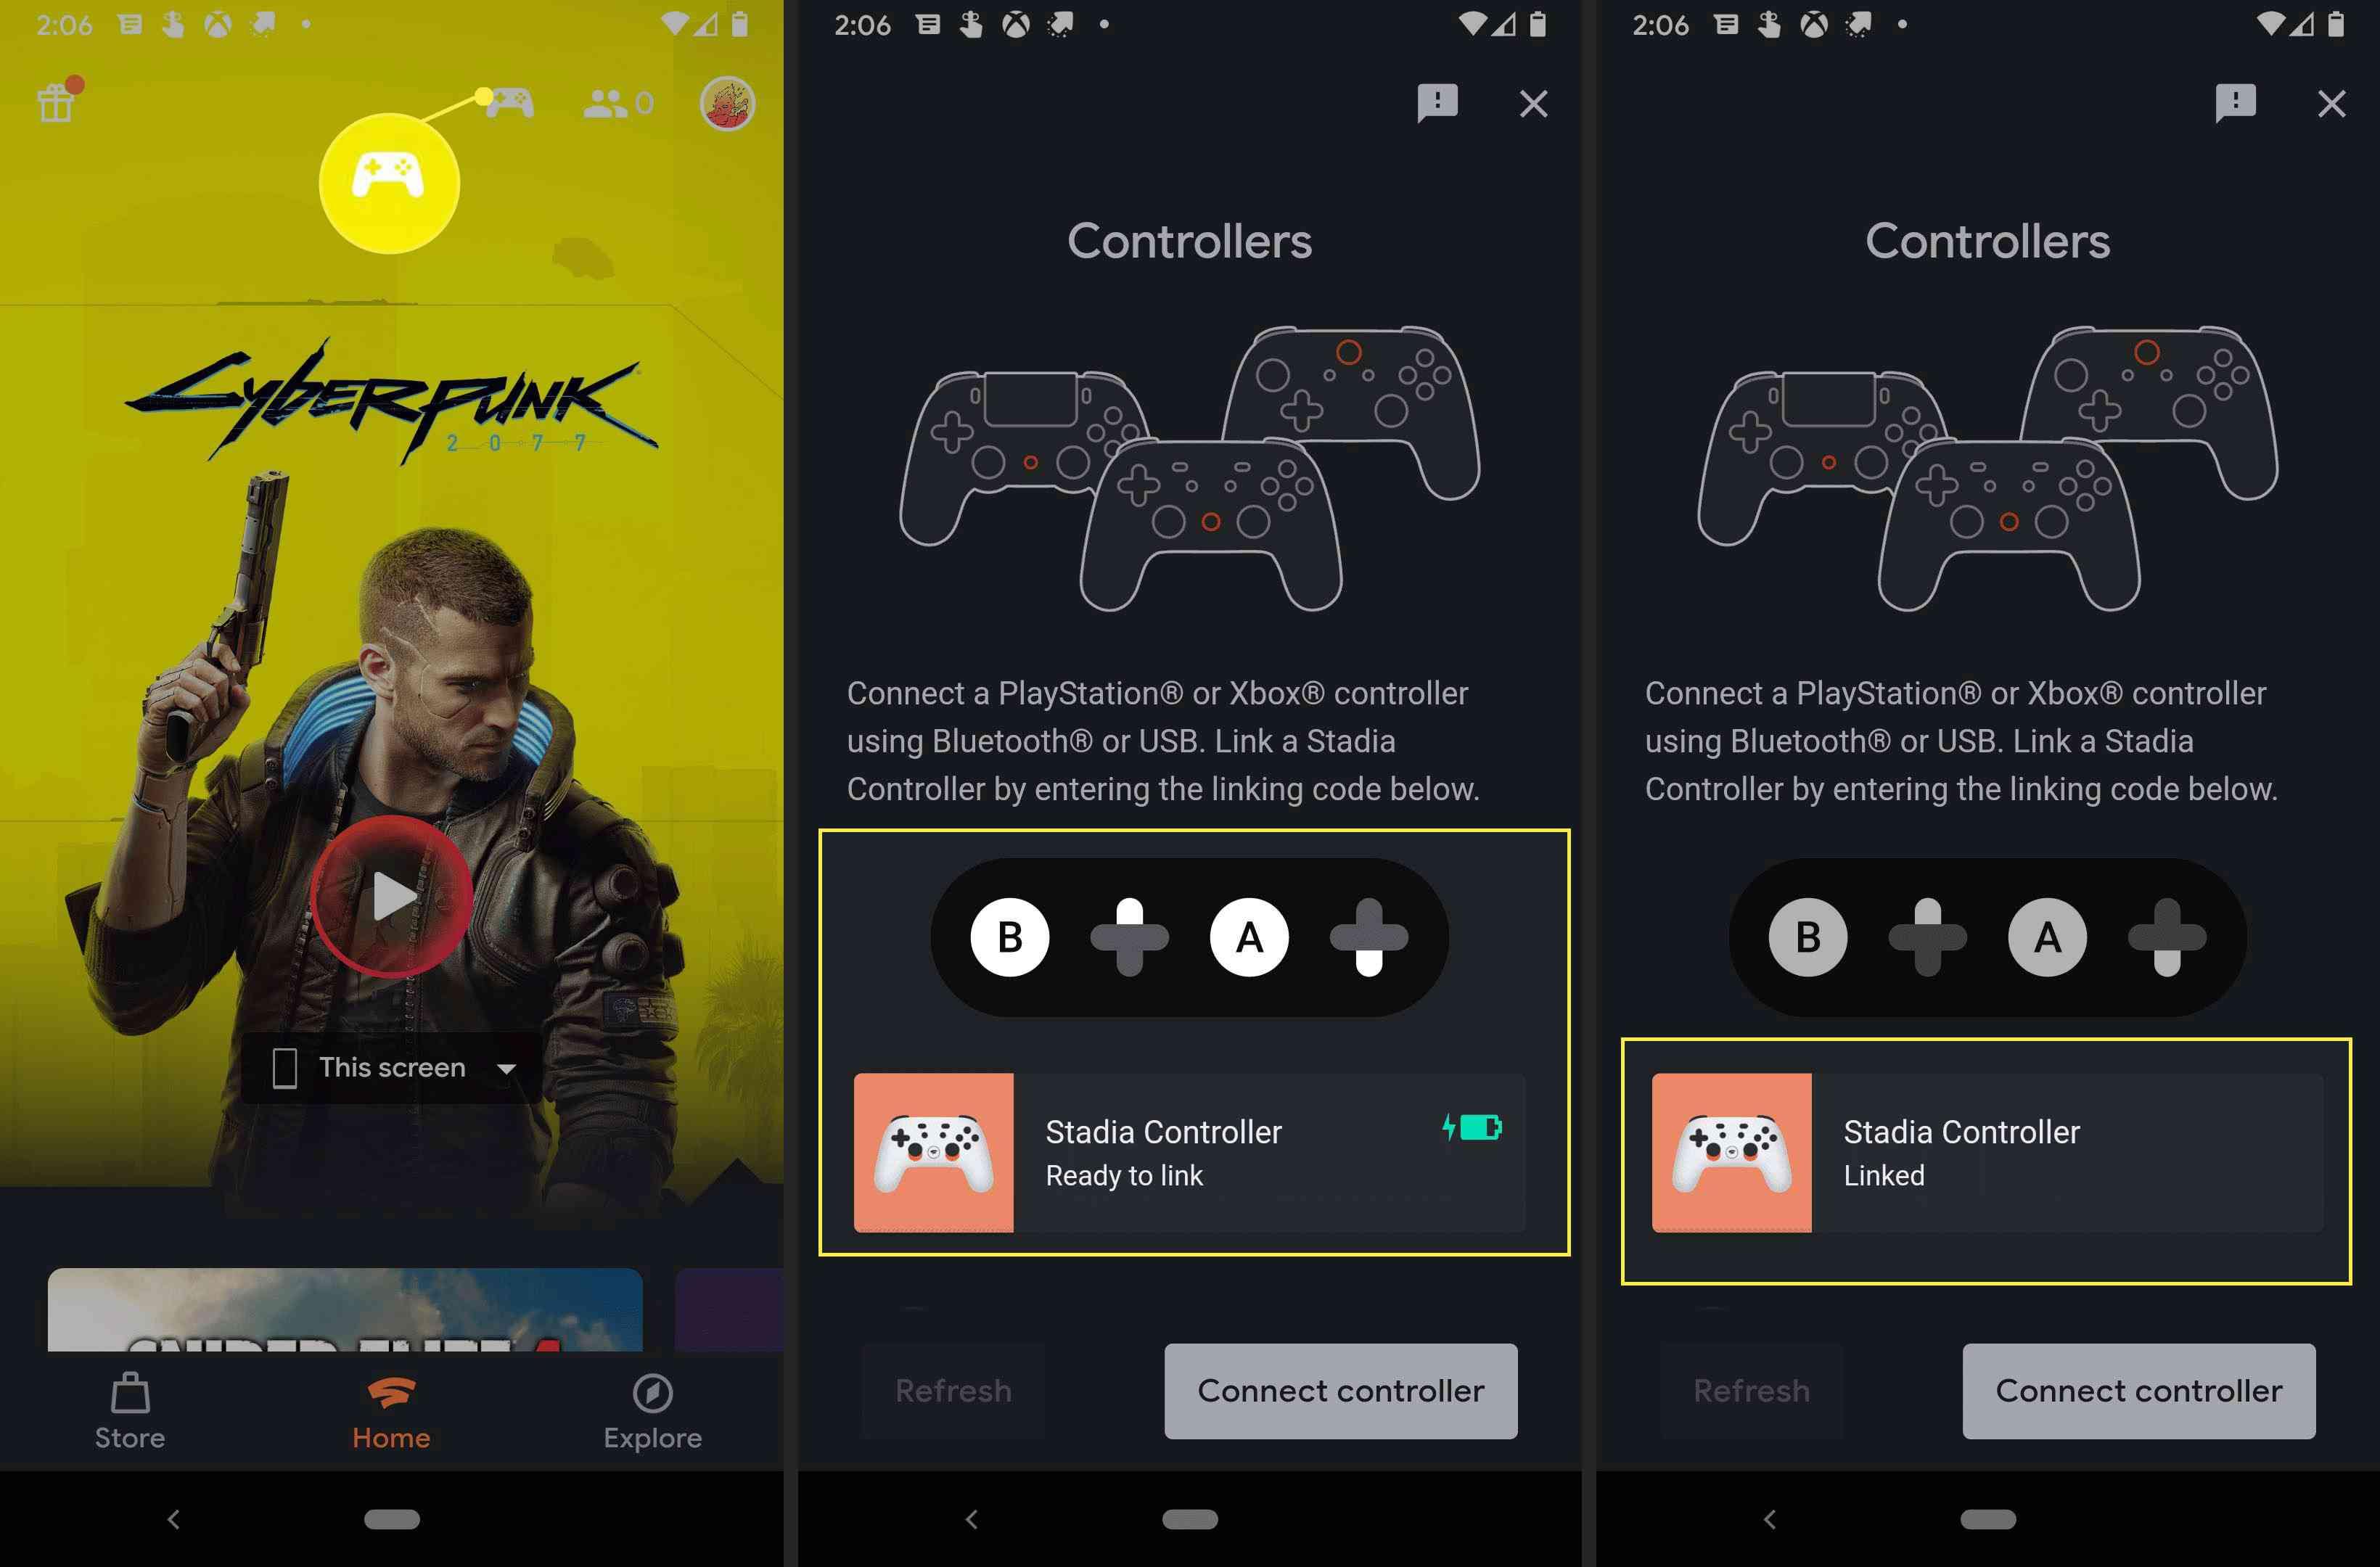 Adding Stadia controller to Android.